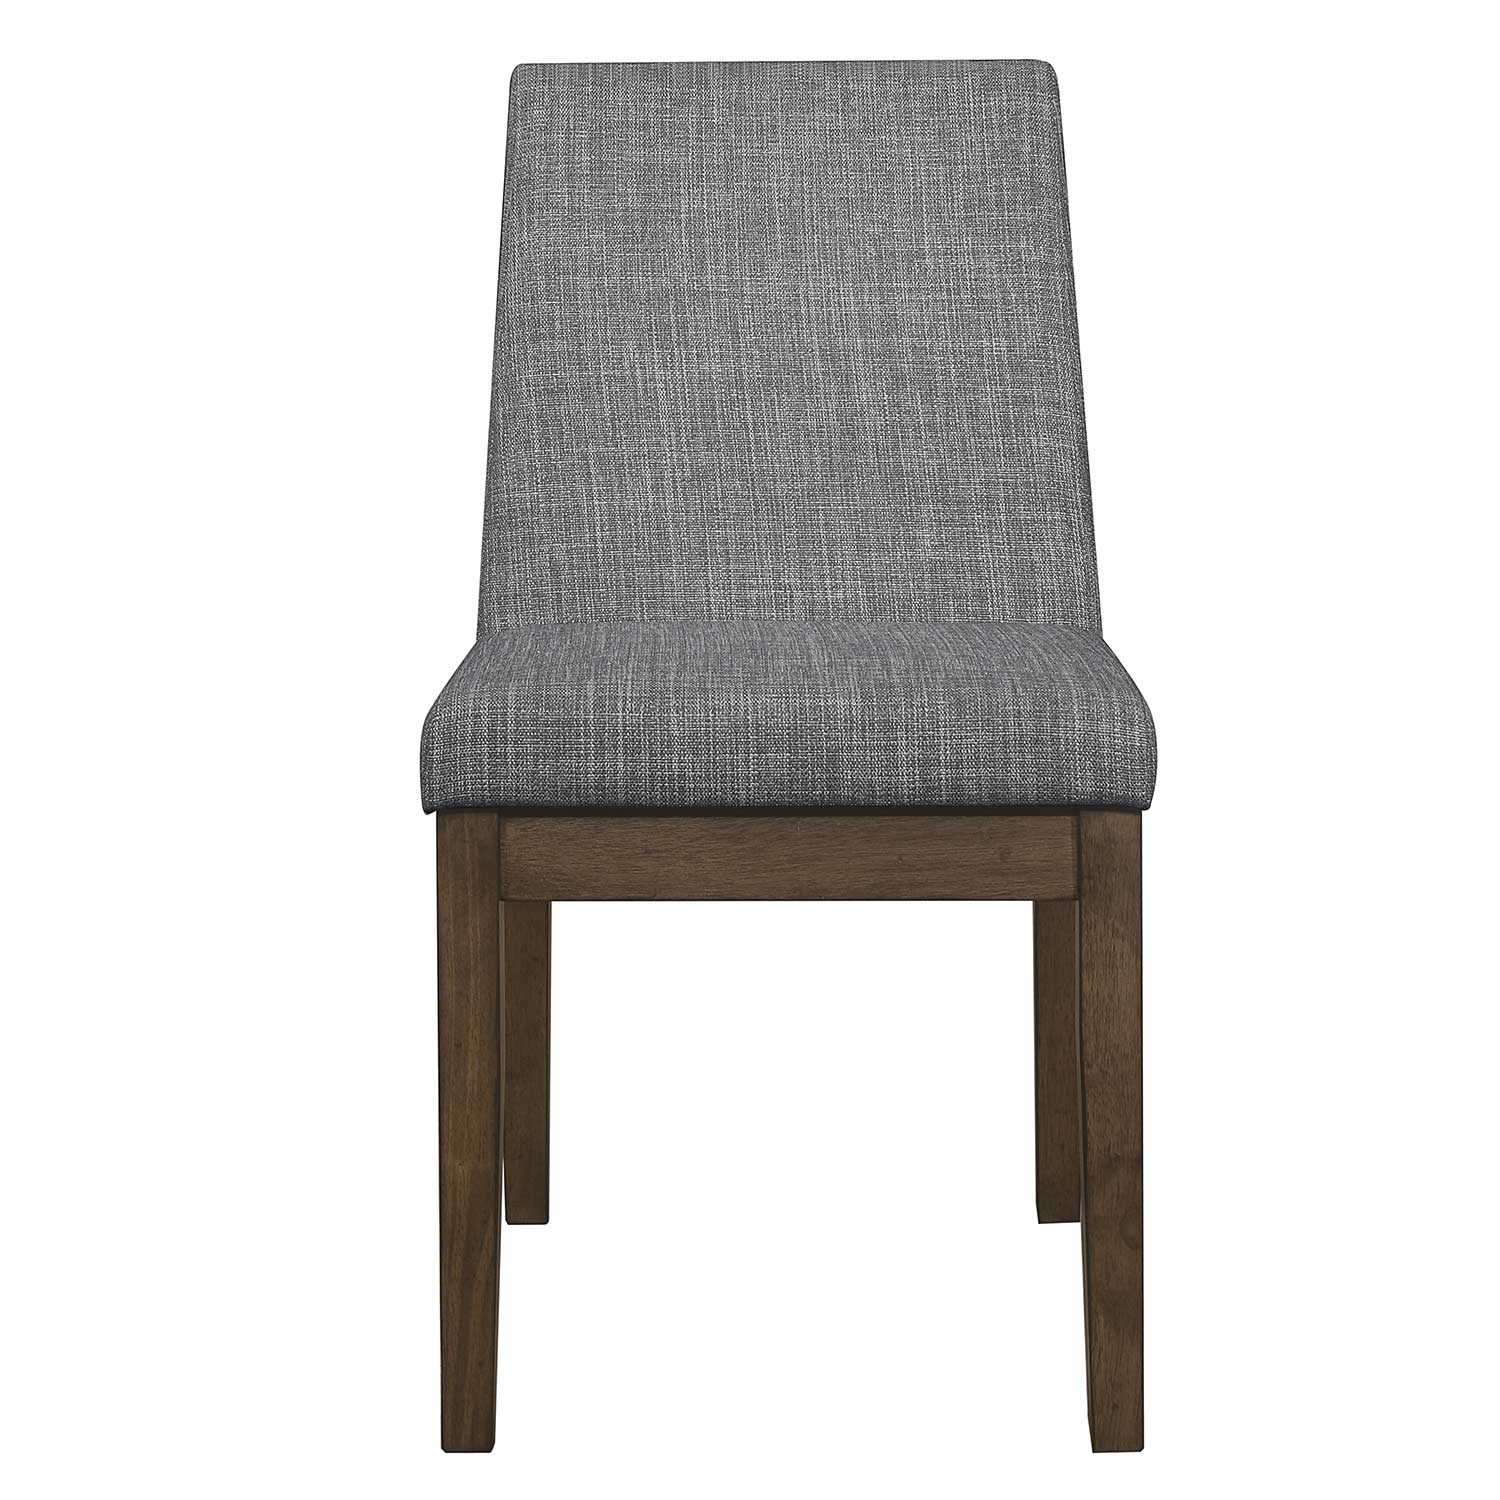 Homelegance Whittaker Side Chair - Light Burnished Brown